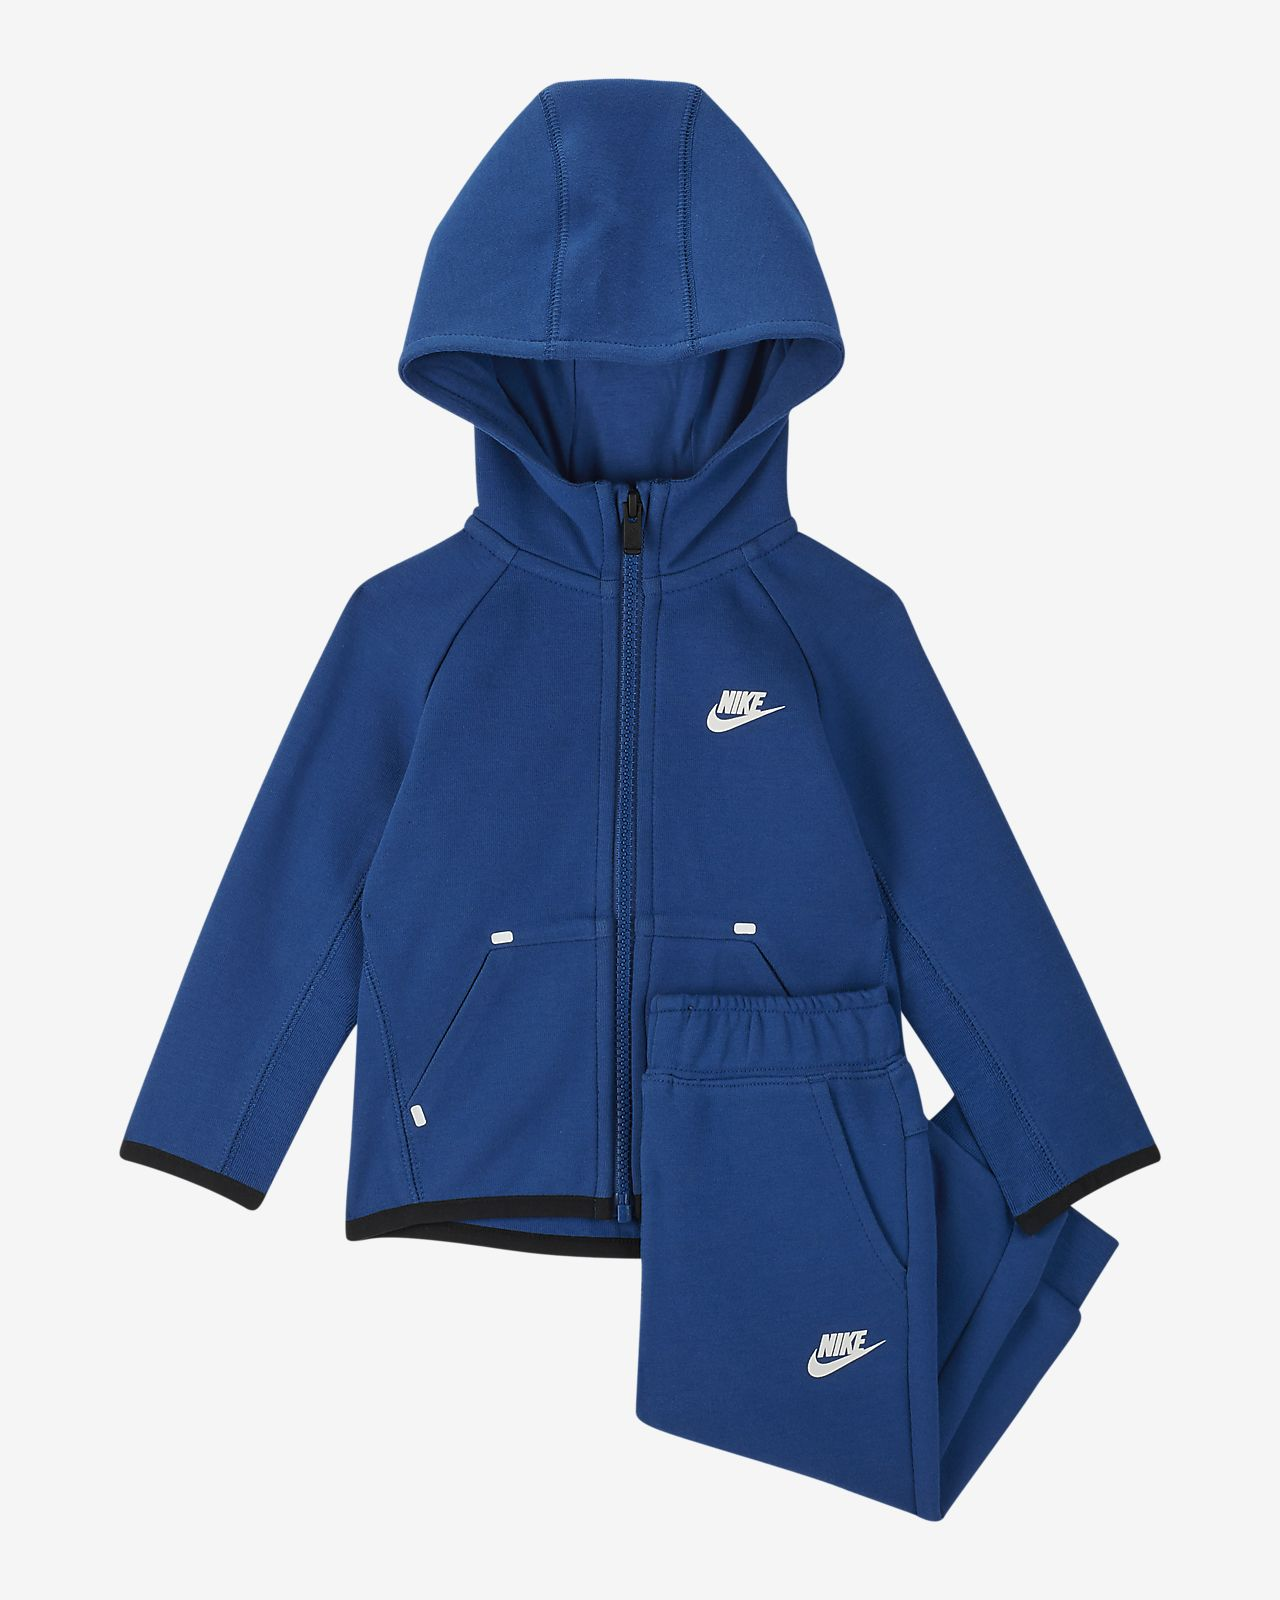 Nike Sportswear Tech Fleece-sæt i to dele til babyer (12-24 M)